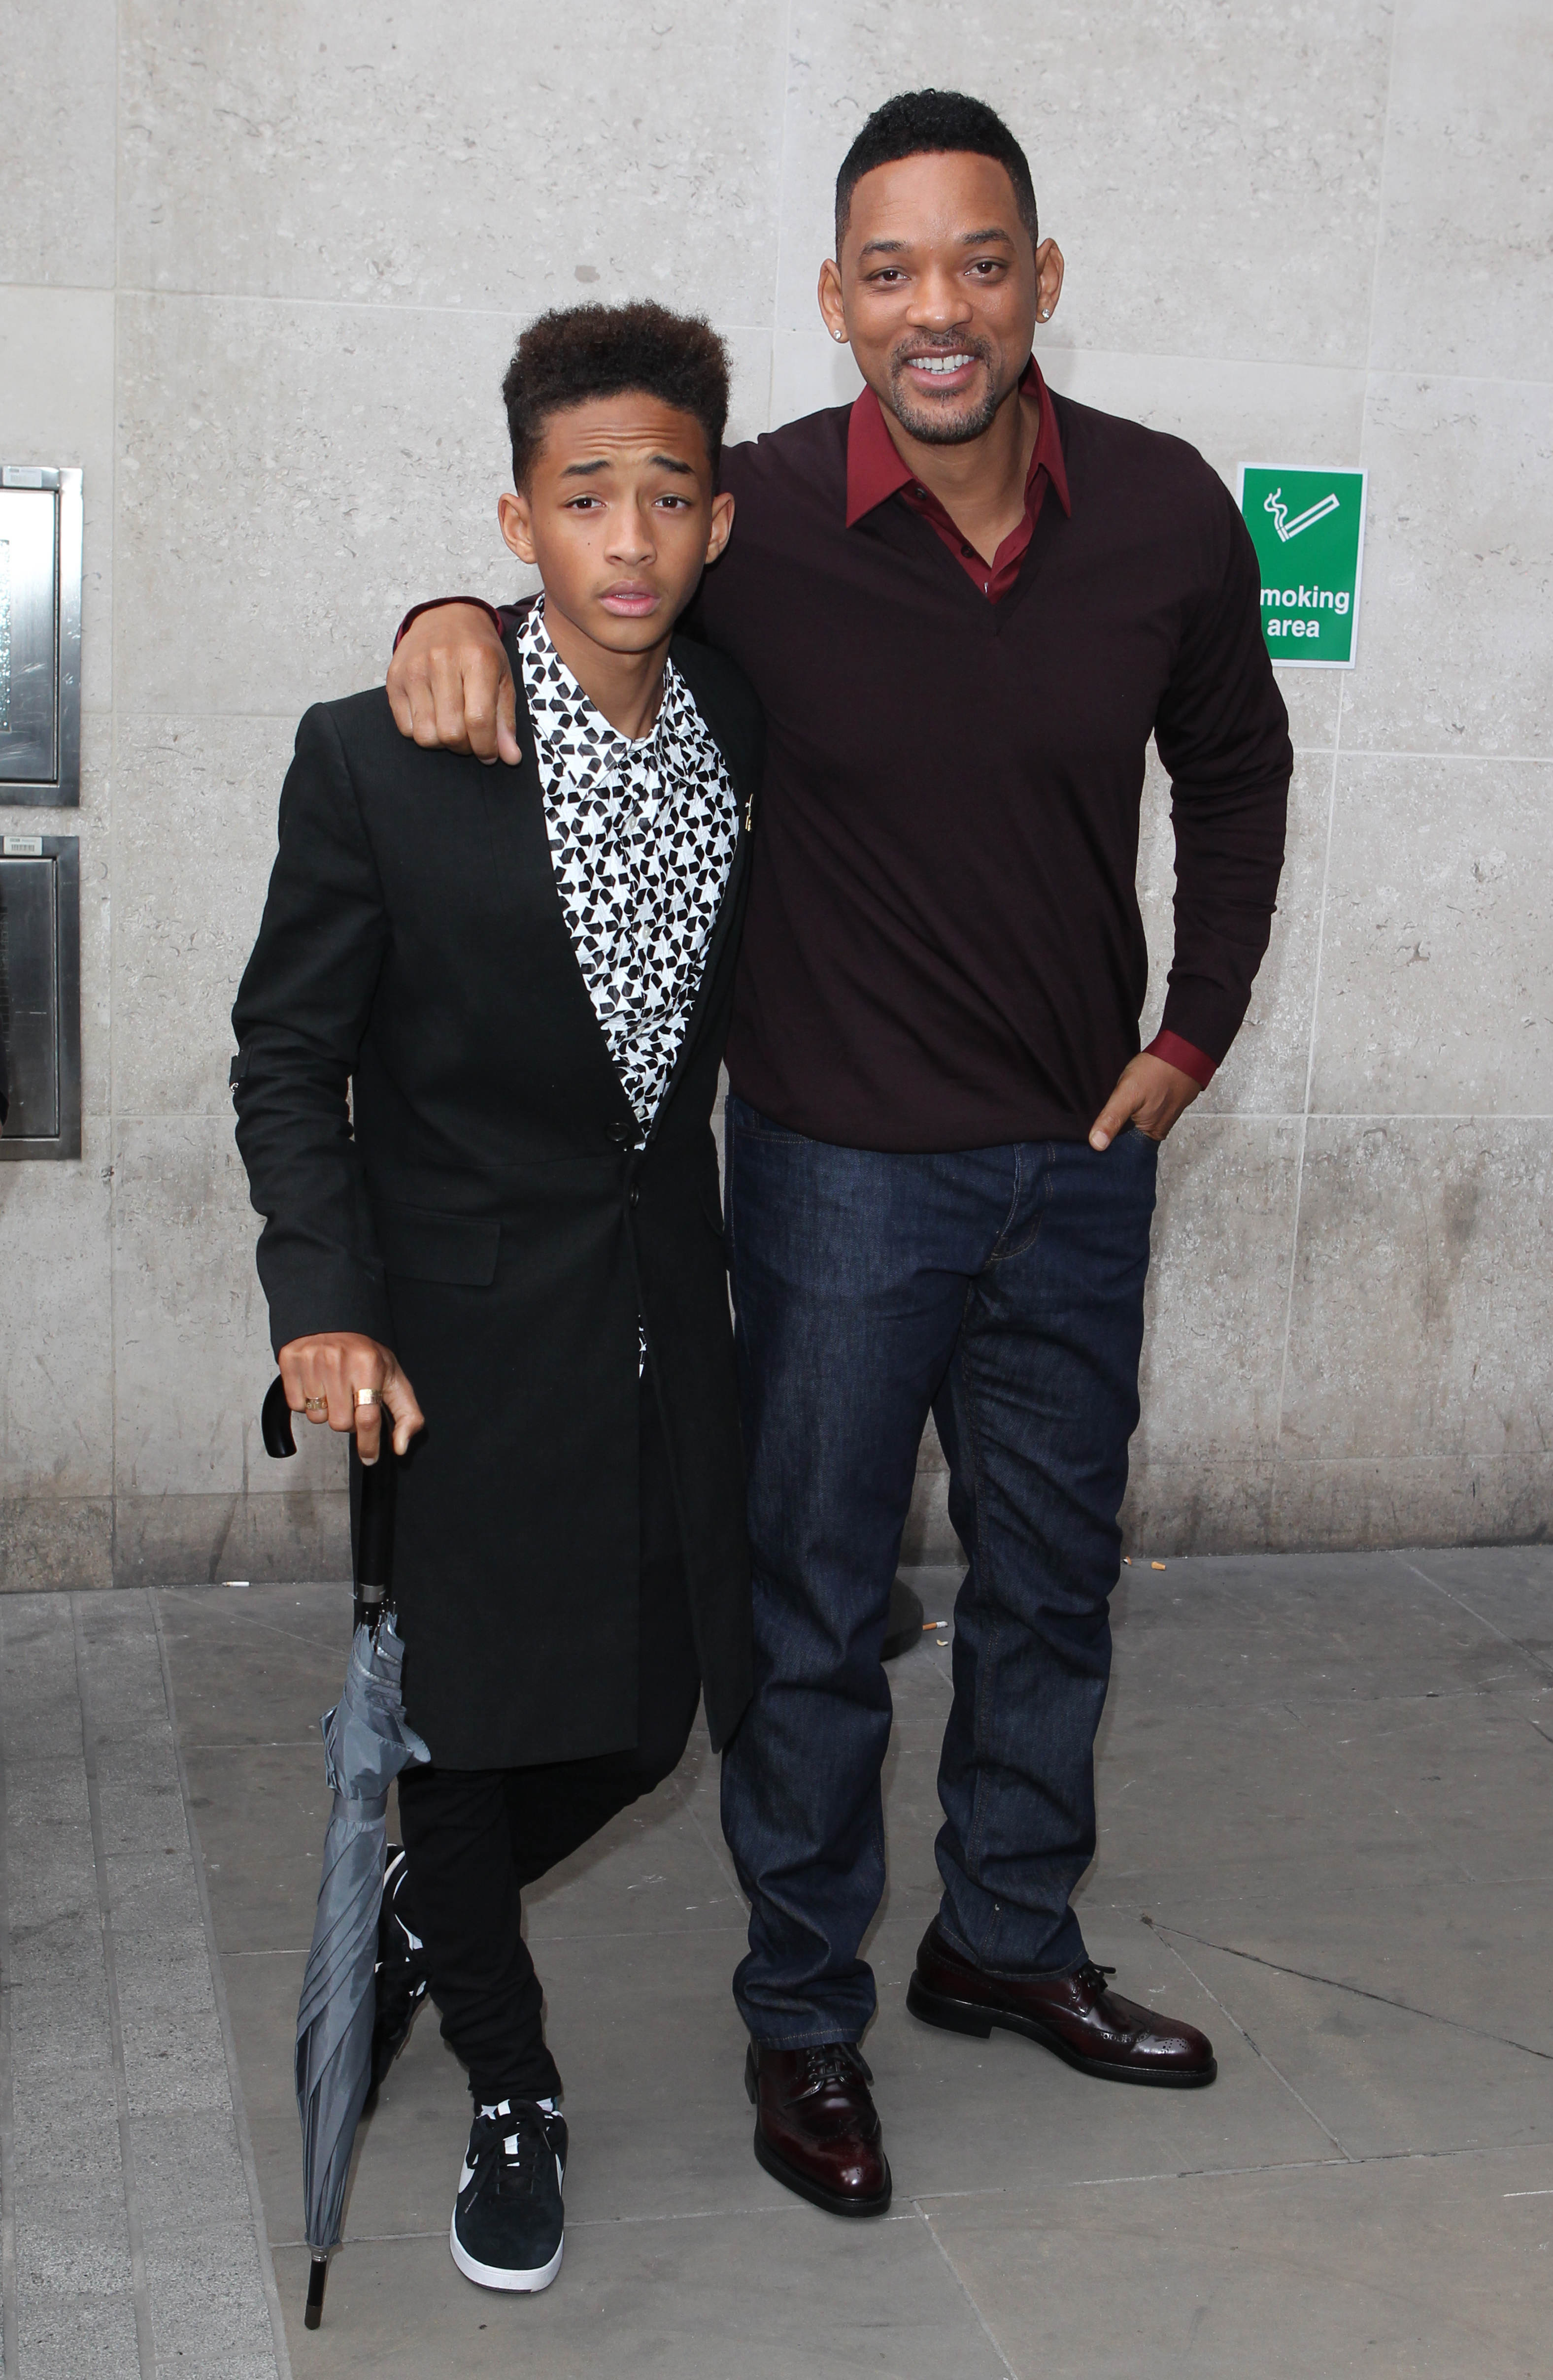 jaden smith worry never smile frown pout grin will smith after earth pose